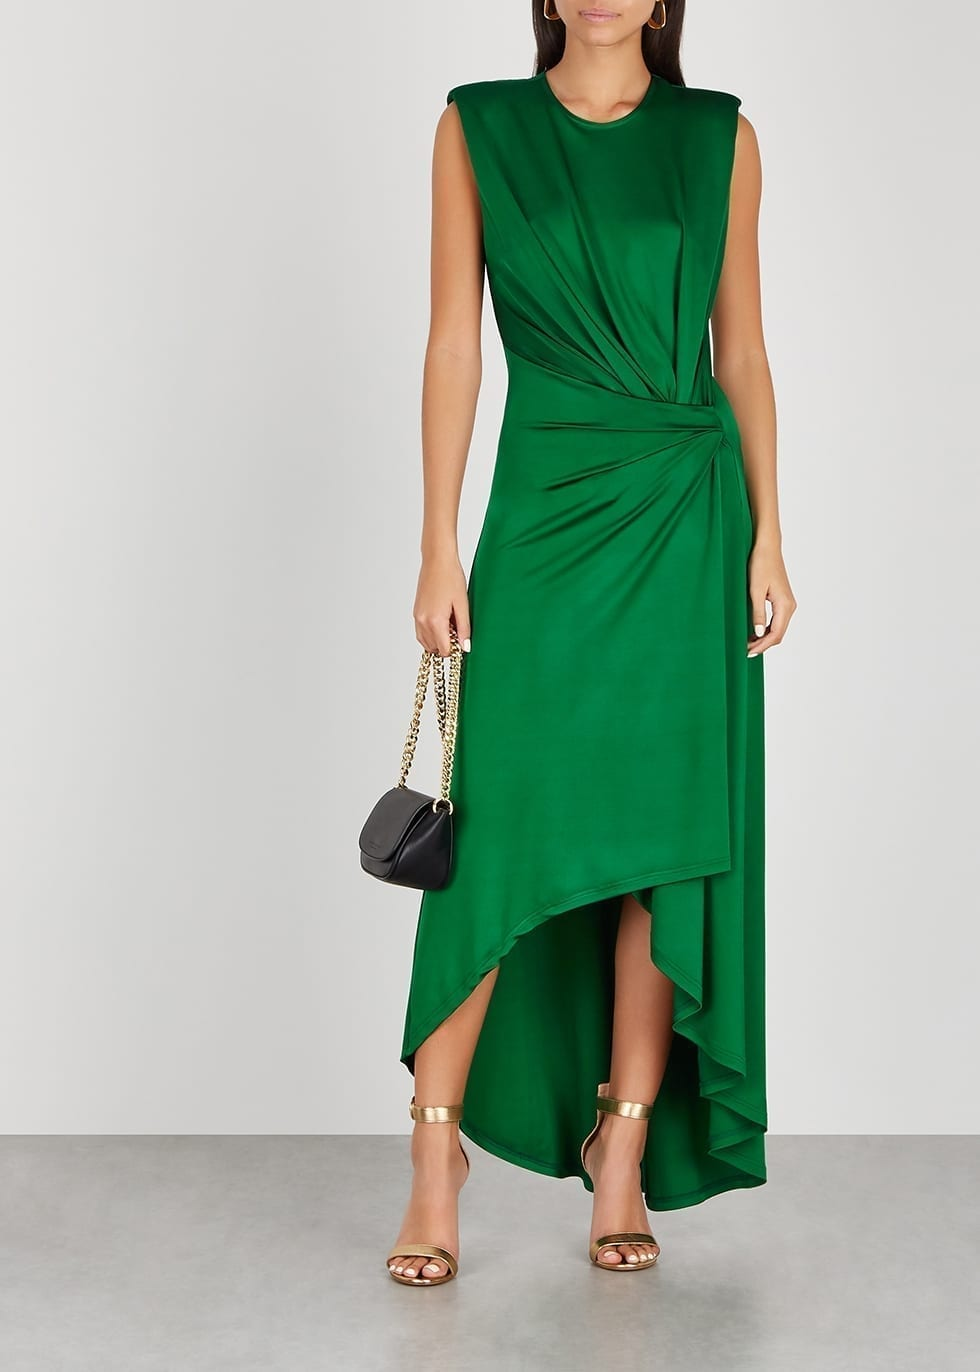 MONSE Green Draped Satin-jersey Maxi Dress